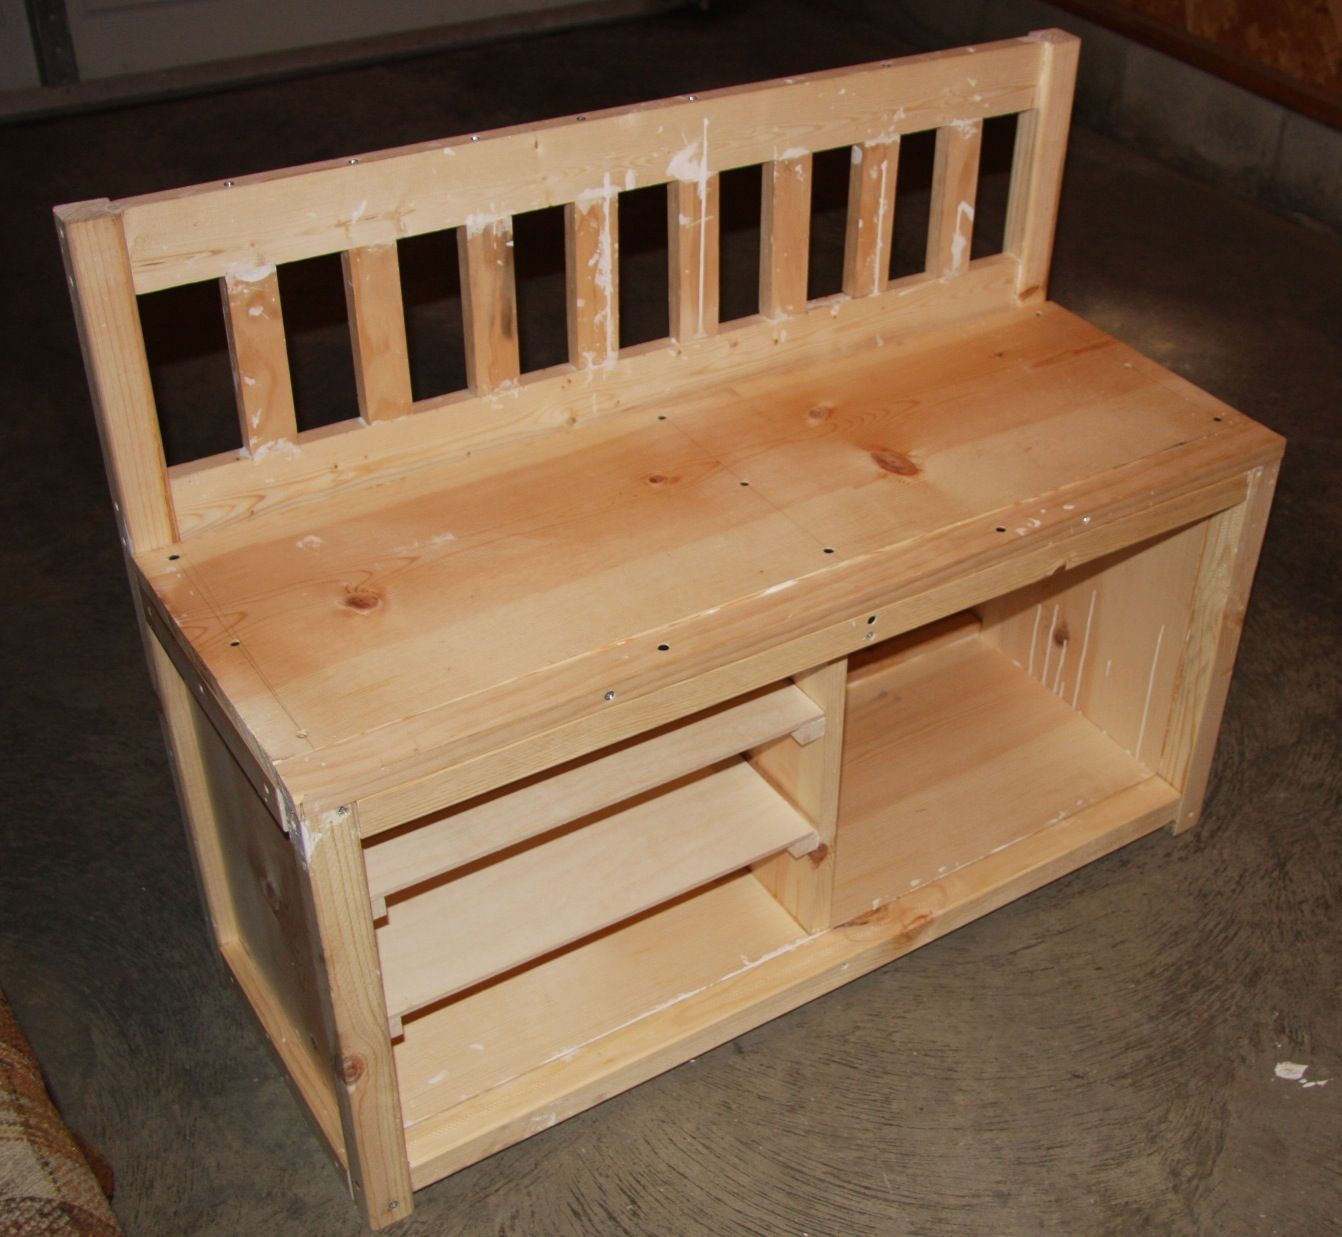 diy shoe rack bench cottage bench with shoe rack do it yourself home projects from ana. Black Bedroom Furniture Sets. Home Design Ideas